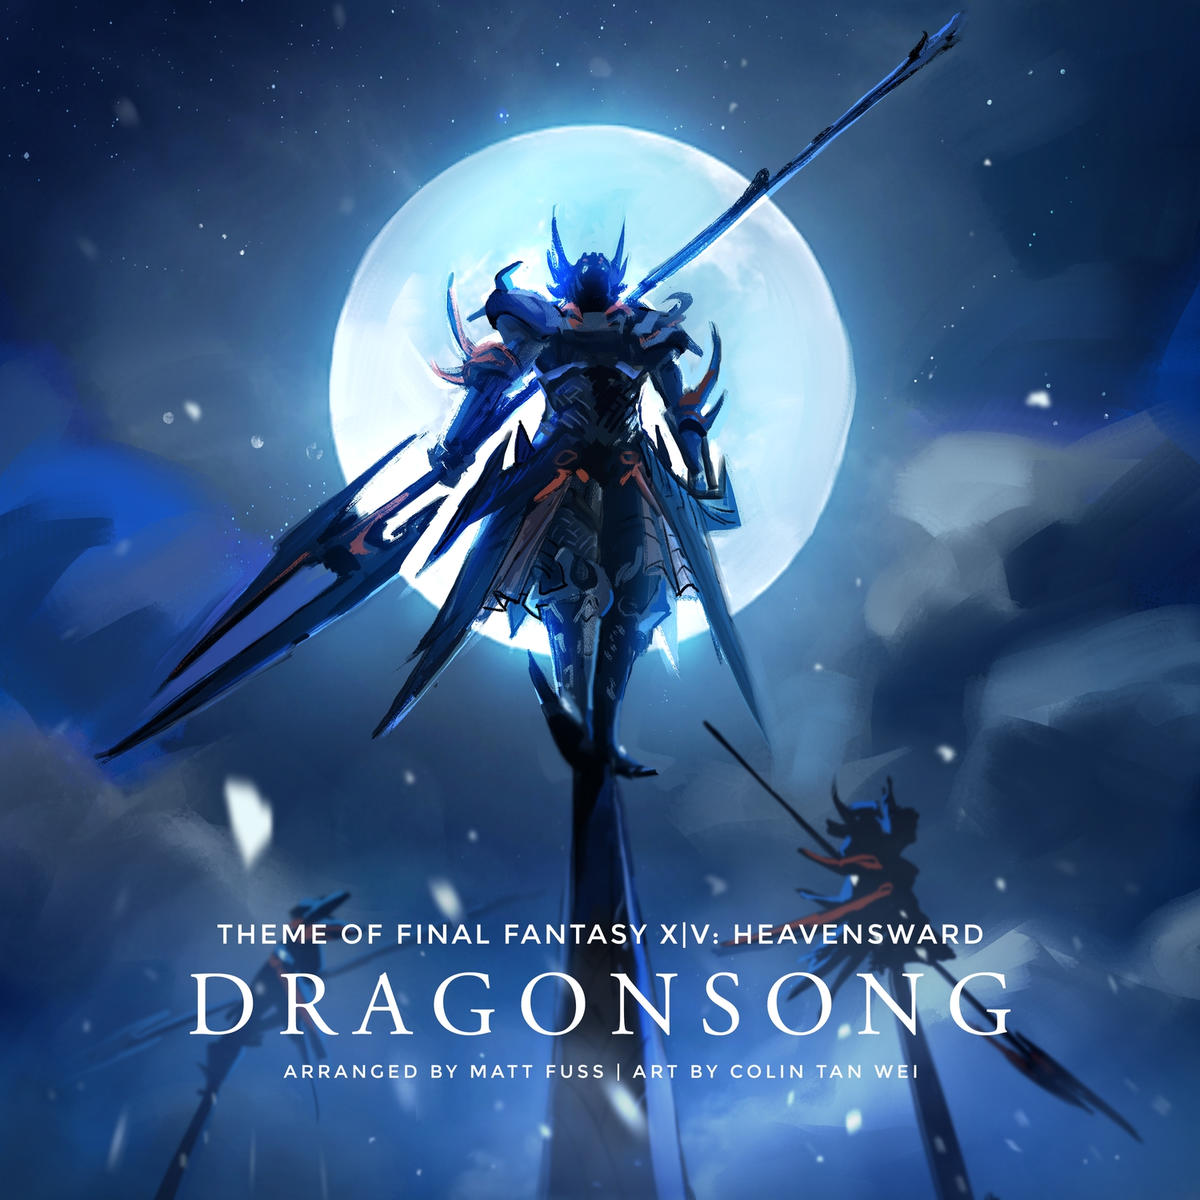 Dragonsong Main Theme of Final Fantasy XIV: Heavensward Piano Cover